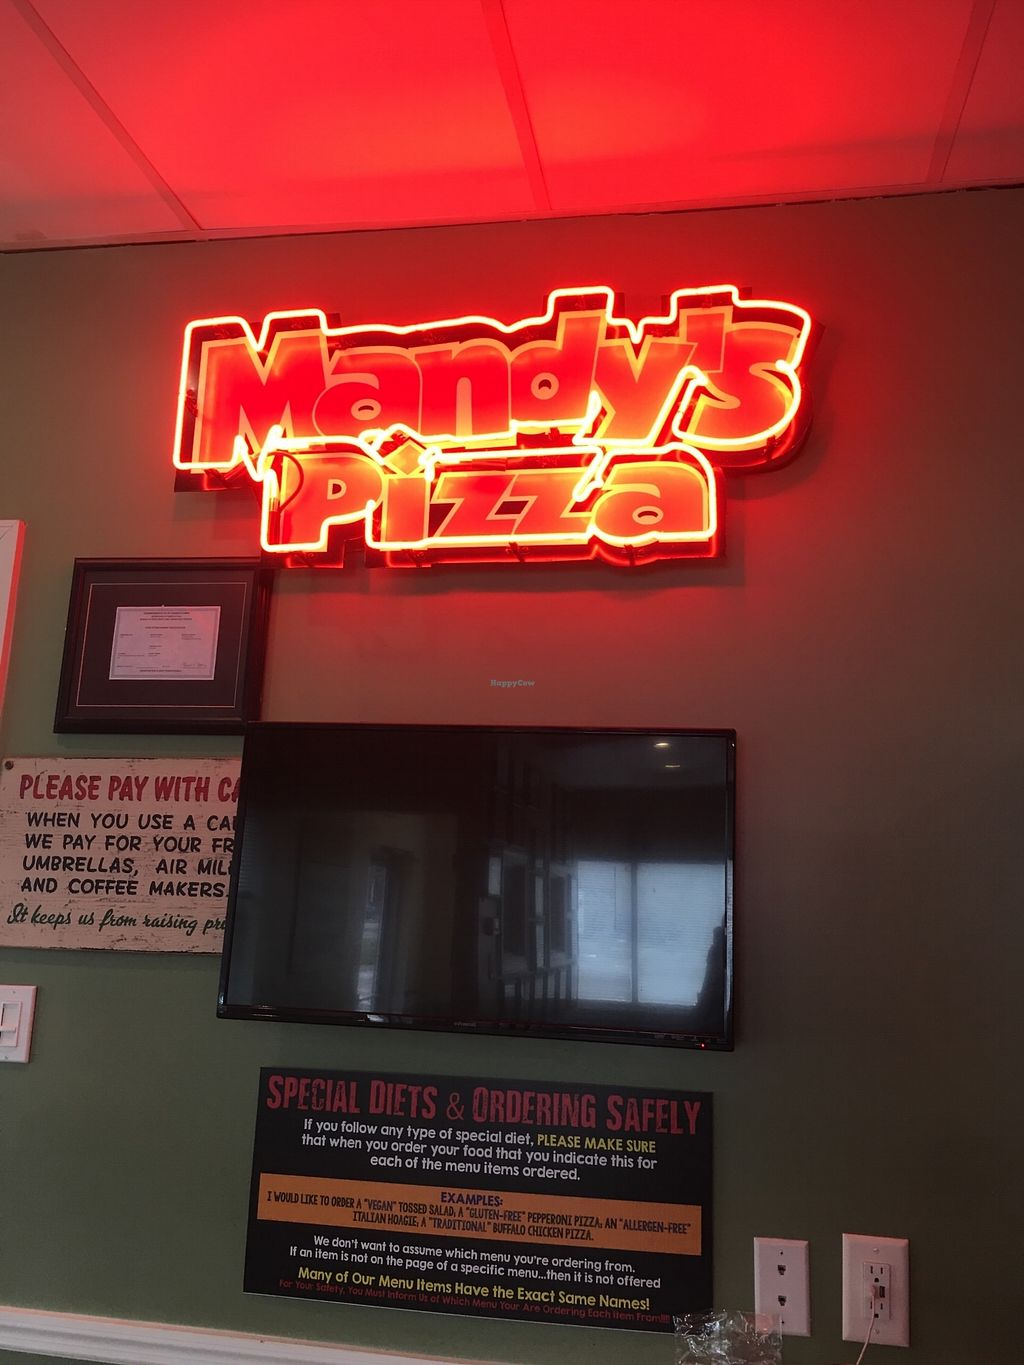 """Photo of Mandy's Pizza  by <a href=""""/members/profile/JamesR"""">JamesR</a> <br/>Mandy's Pizza  <br/> February 18, 2018  - <a href='/contact/abuse/image/98628/361002'>Report</a>"""